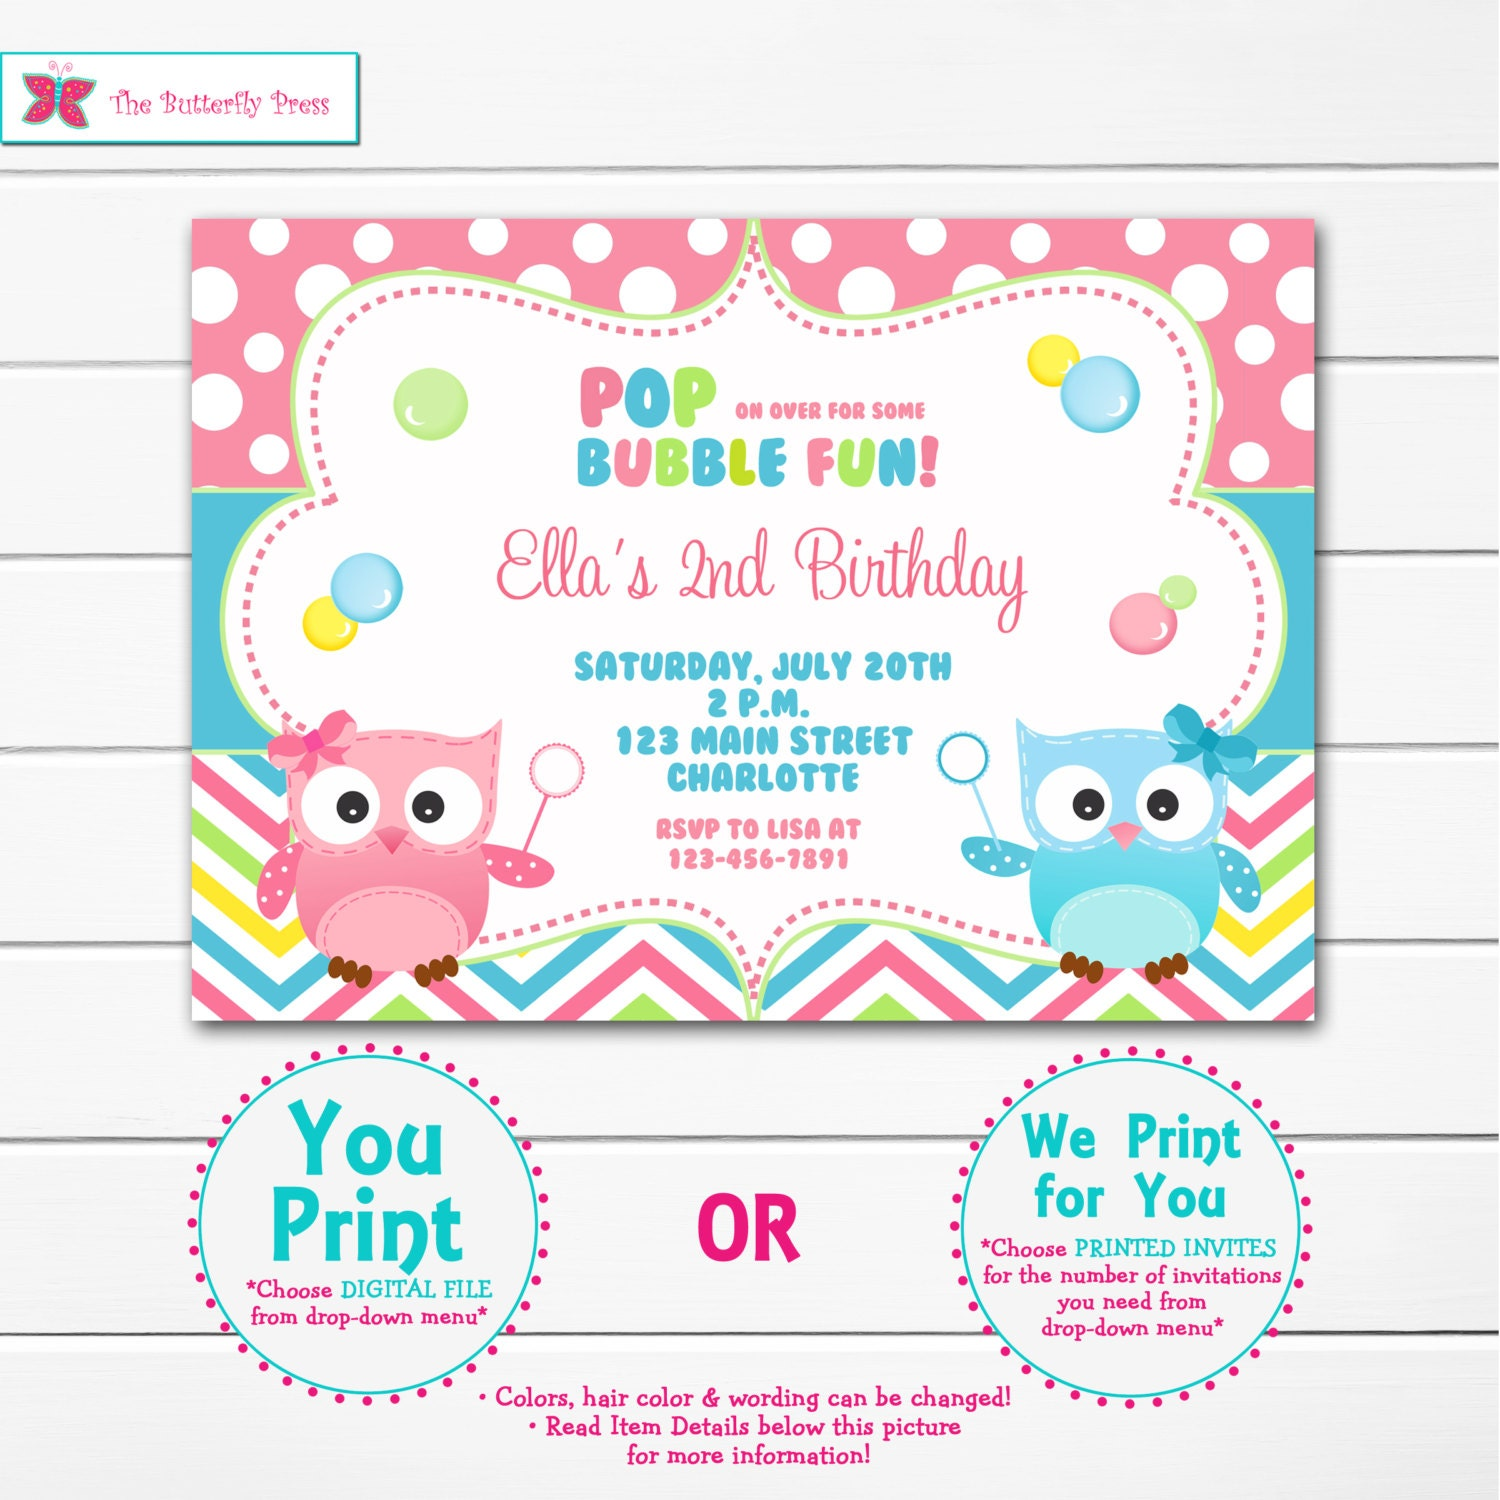 Owl and Bubbles Birthday Party Invitation Blowing Bubbles | Etsy